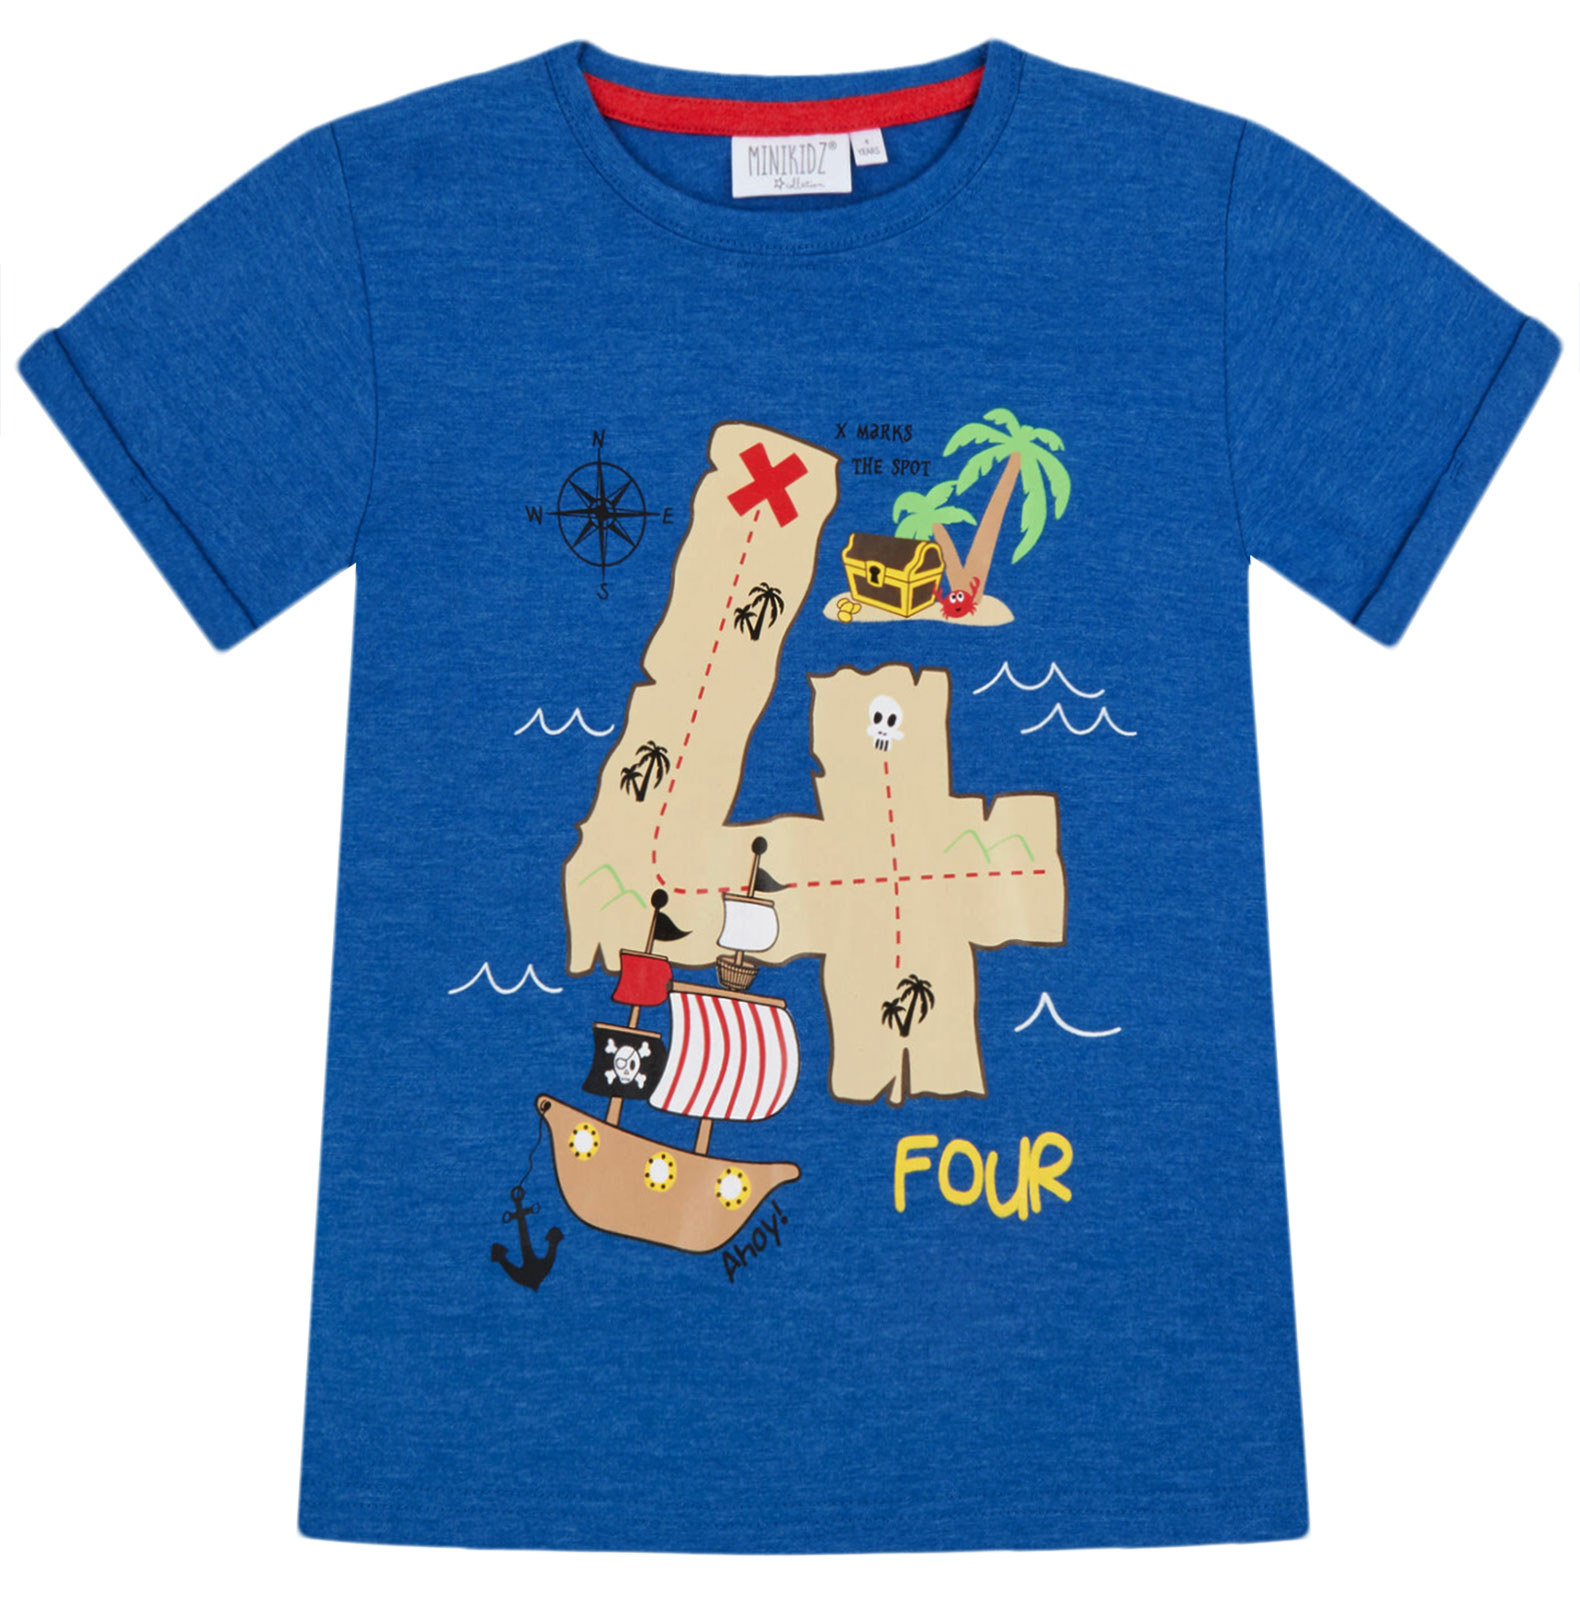 Boys-Birthday-I-Am-1-2-3-4-5-6-Years-Top-Kids-New-Age-Number-Birthday-T-Shirt thumbnail 9